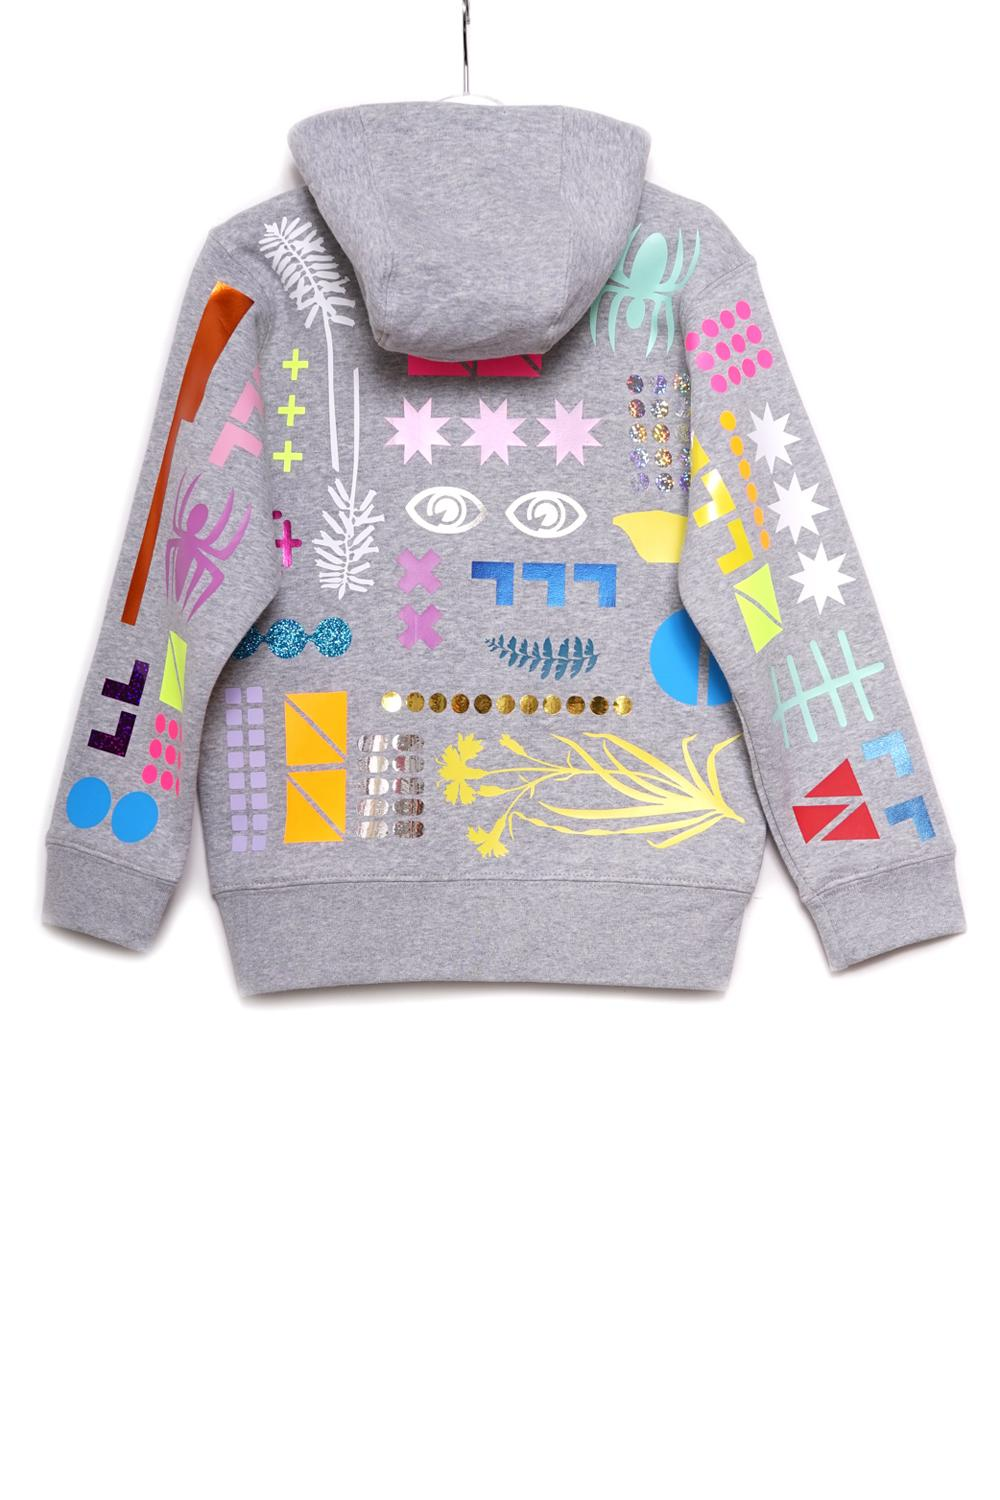 Everything Allover Zip Jacket Kids - 2